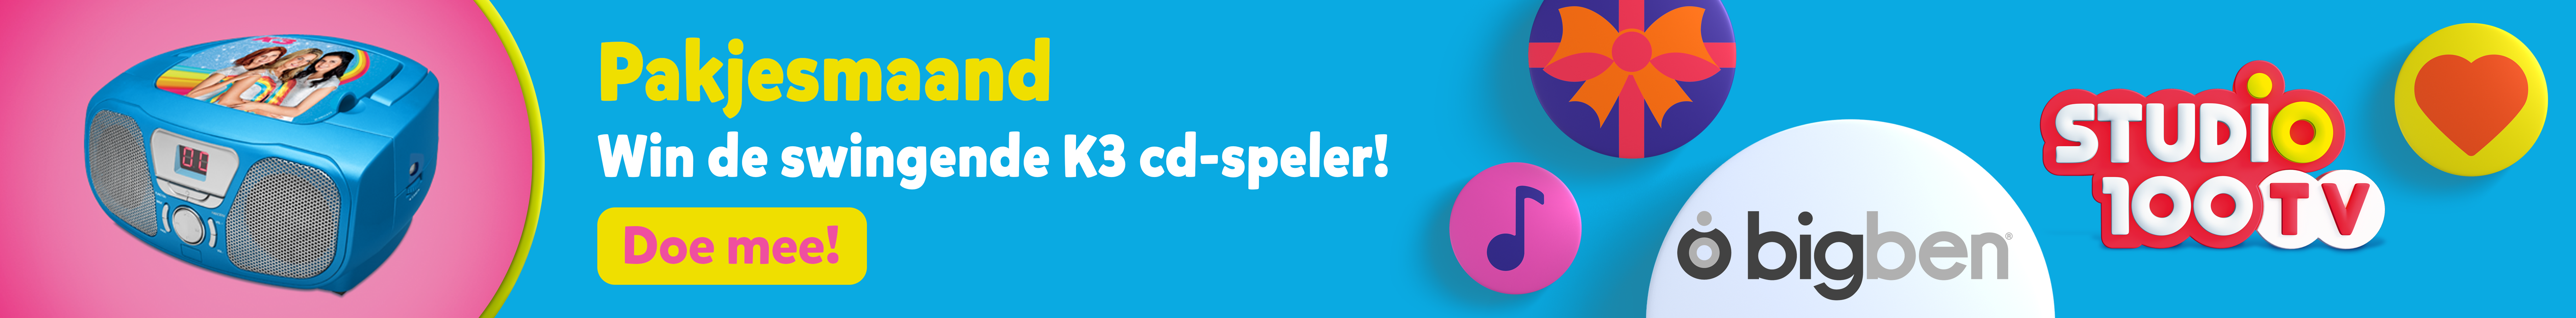 Win de swingende K3 Cd-speler